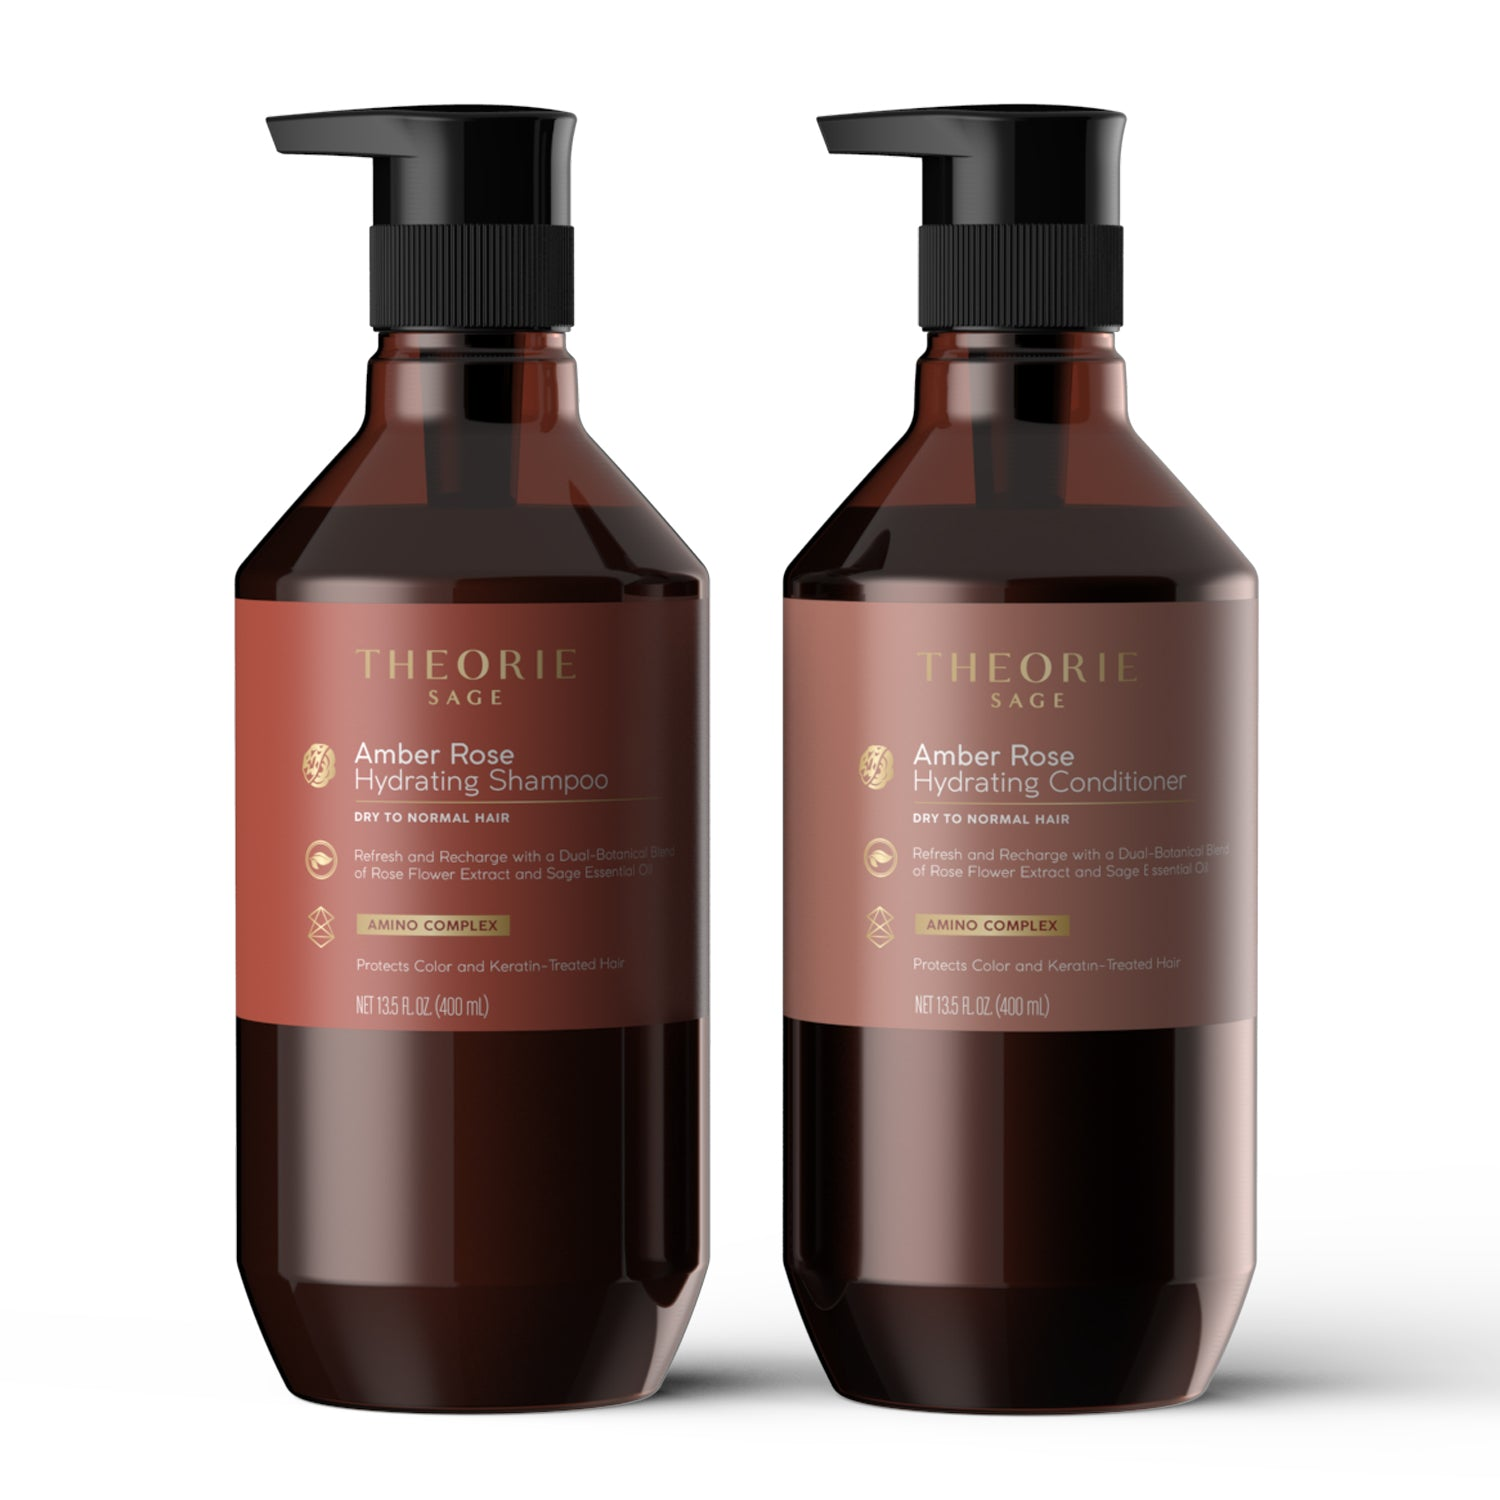 Theorie: Sage - Amber Rose Hydrating Shampoo & Condition Set